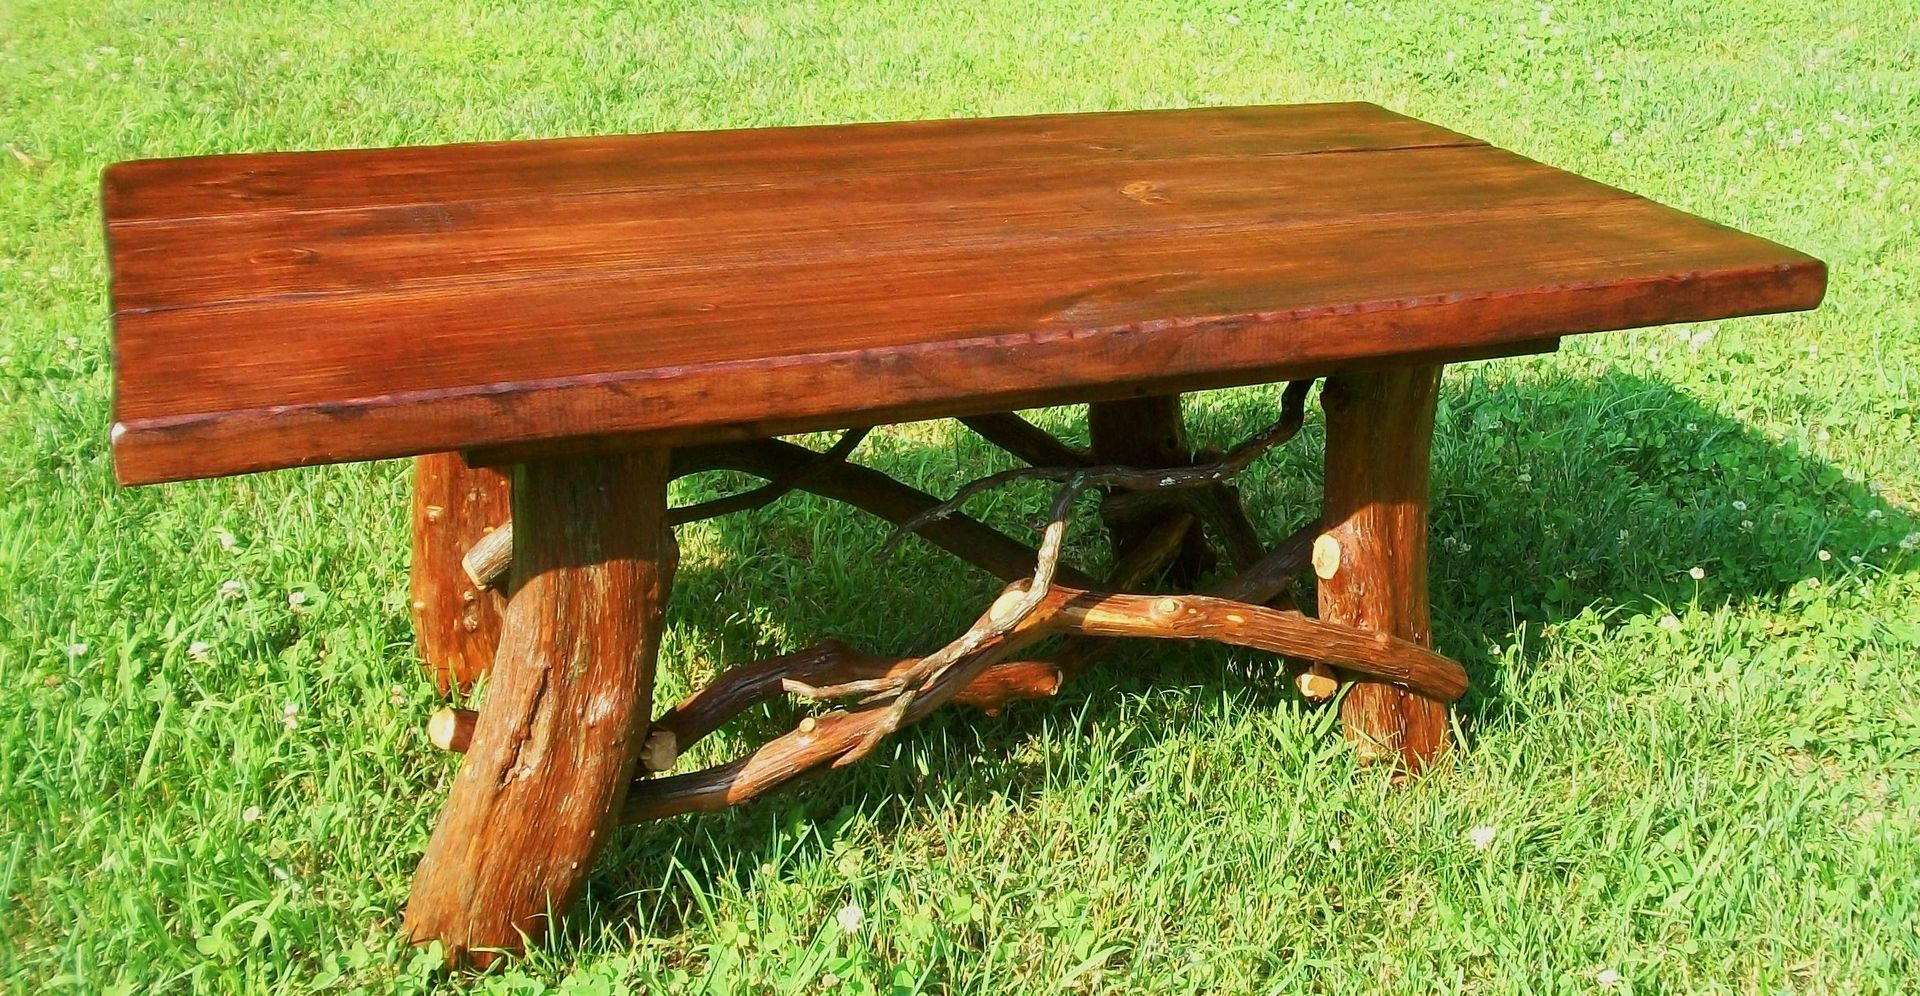 Hand Crafted Rustic Coffee Table With Mountain Laurel Base Log Cabin Furniture By Blue Ridge